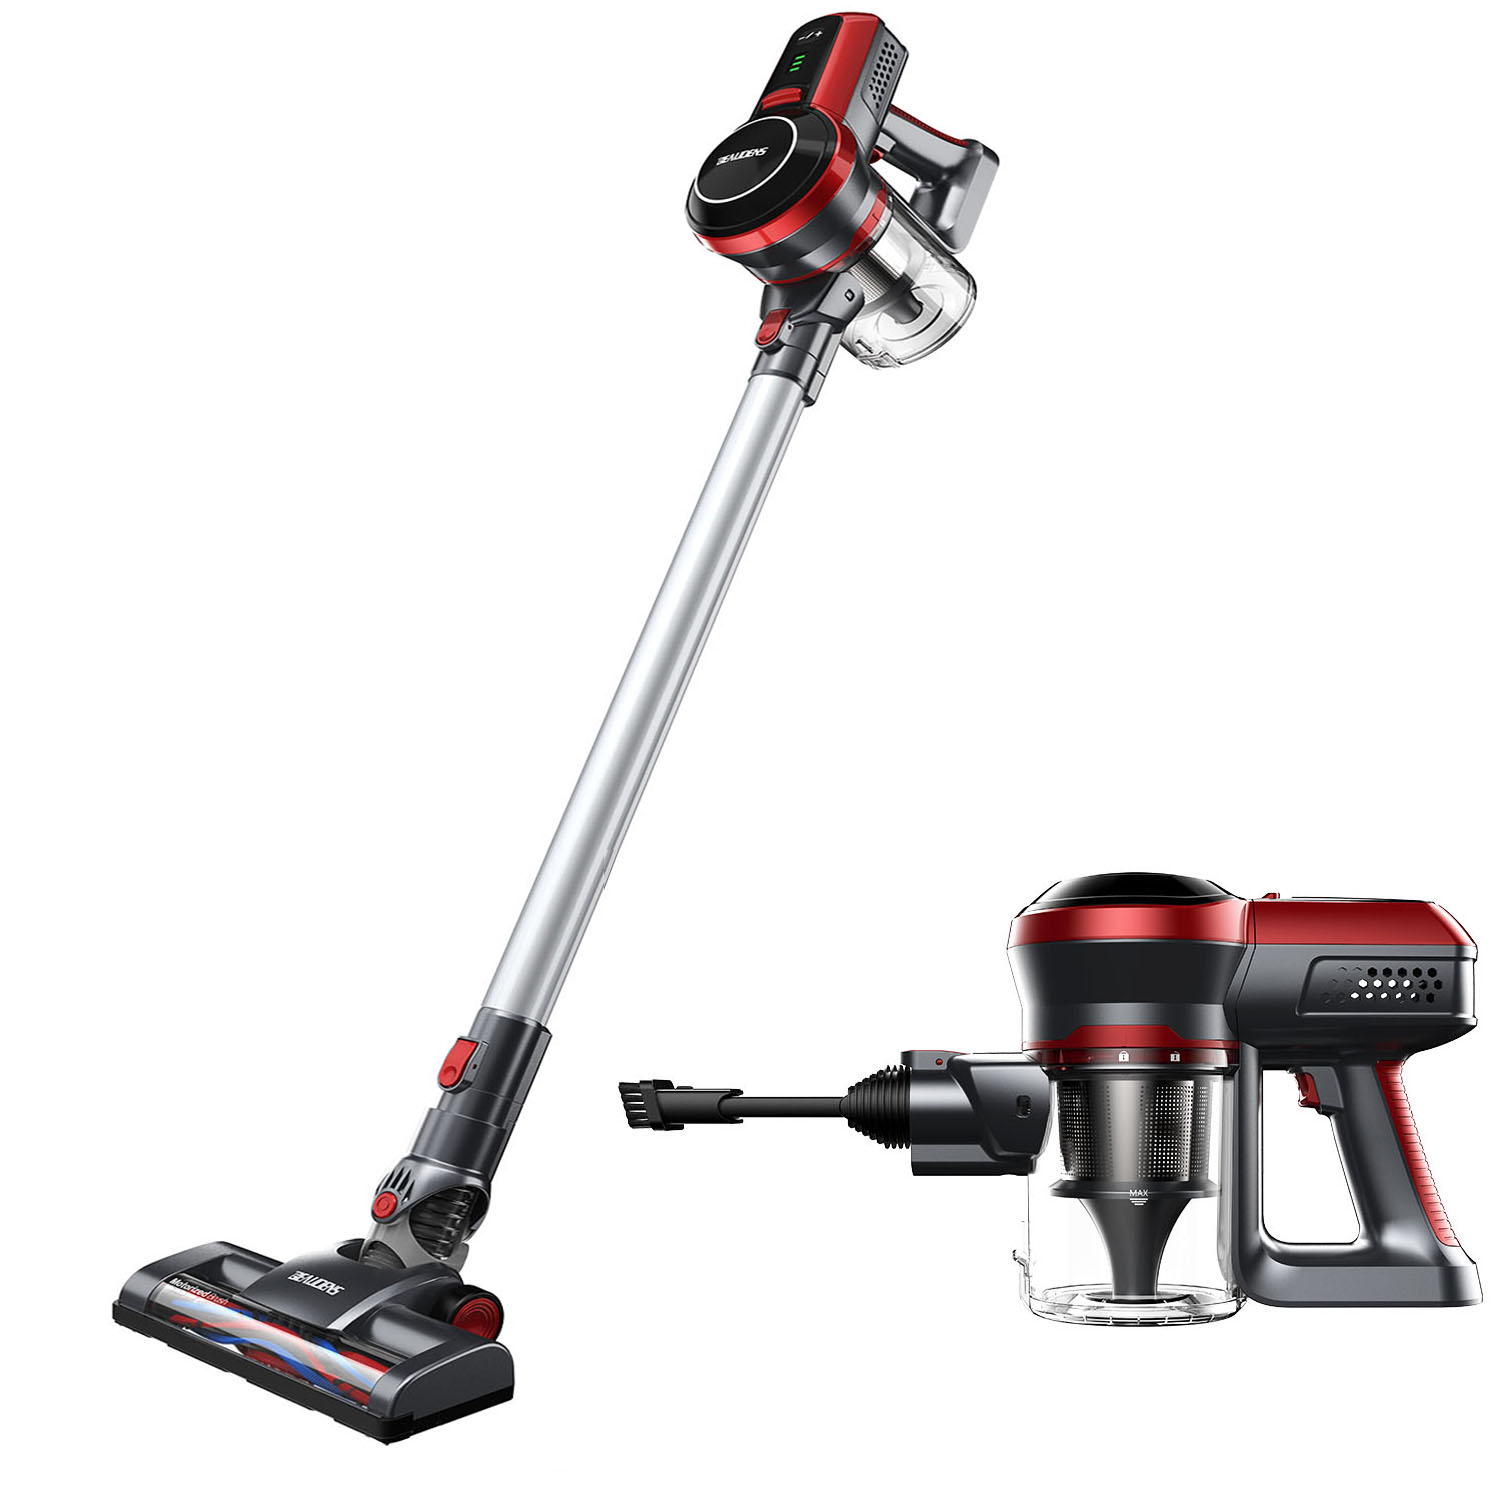 Cordless Vacuum Cleaner, BEAUDENS 2-in-1 Stick and Handheld Vacuum Cleaner, 9Kpa High Suction